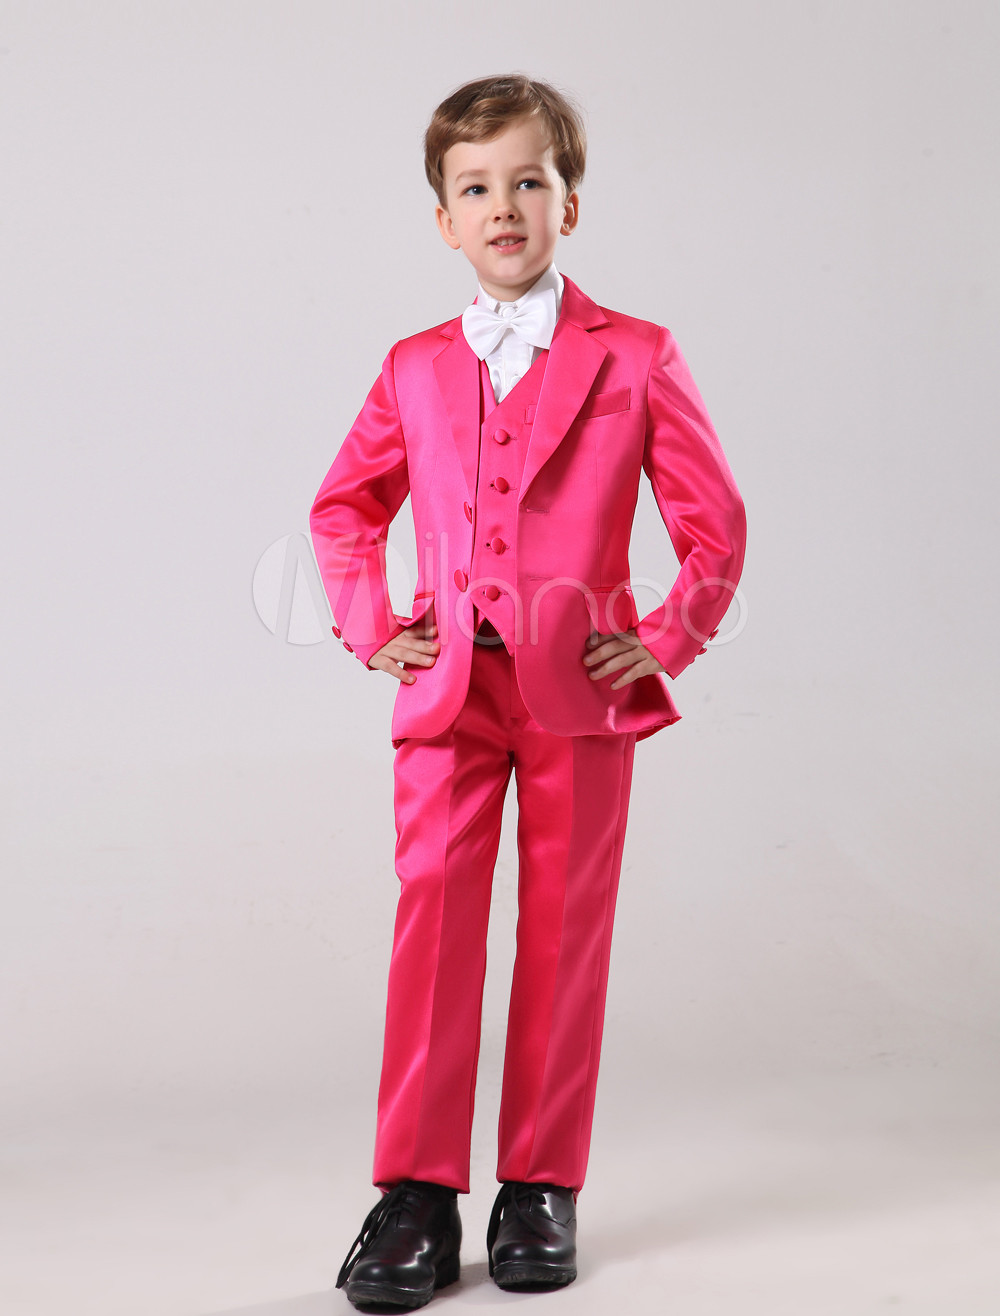 Gorgeous Rose Red Satin Bridal Ring Bearer Suits